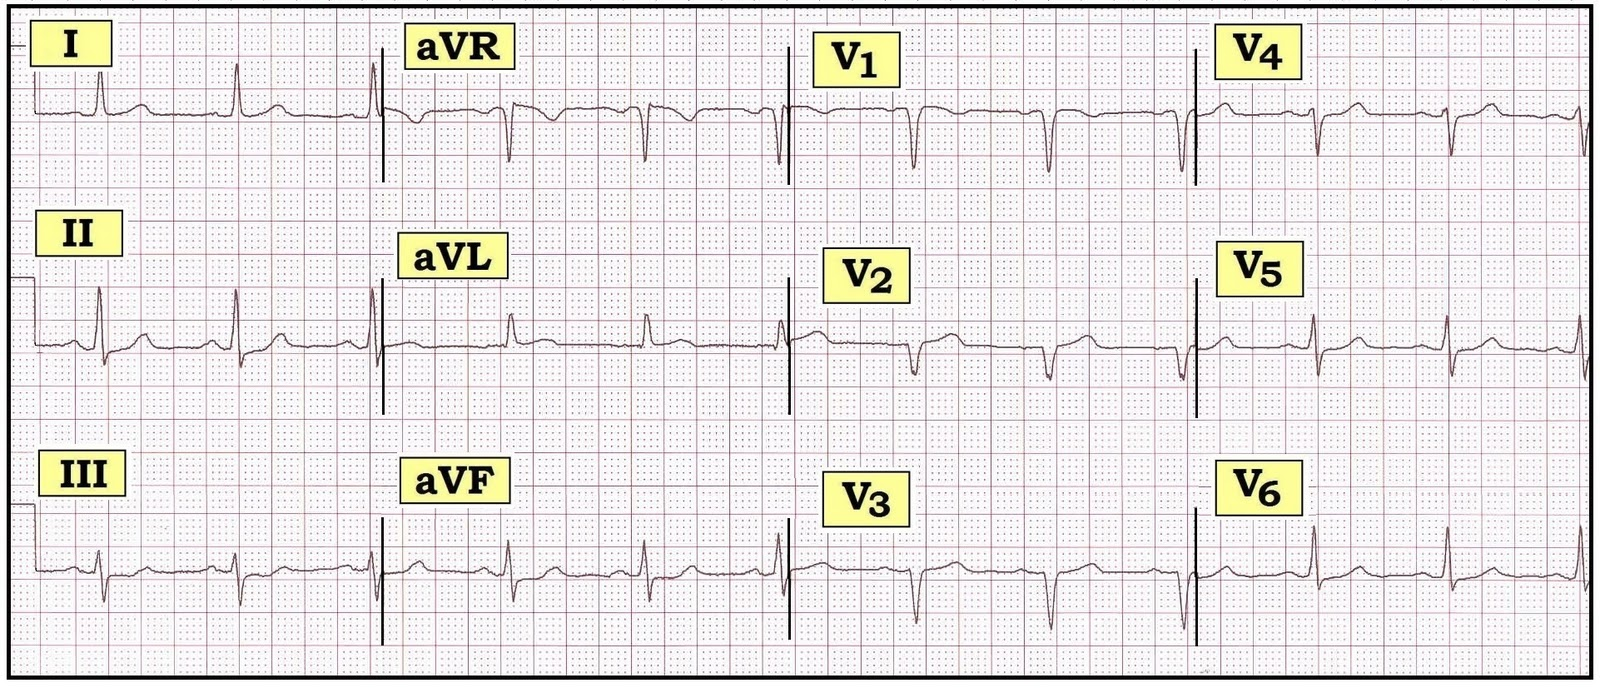 Ecg Interpretation Review 34 Acute Mi Vs Figure 1 Block Diagram Click On Image To Enlarge 12 Lead From A 72 Year Old Woman With New Onset Chest Discomfort Do You Agree That There Are No Changes Note By